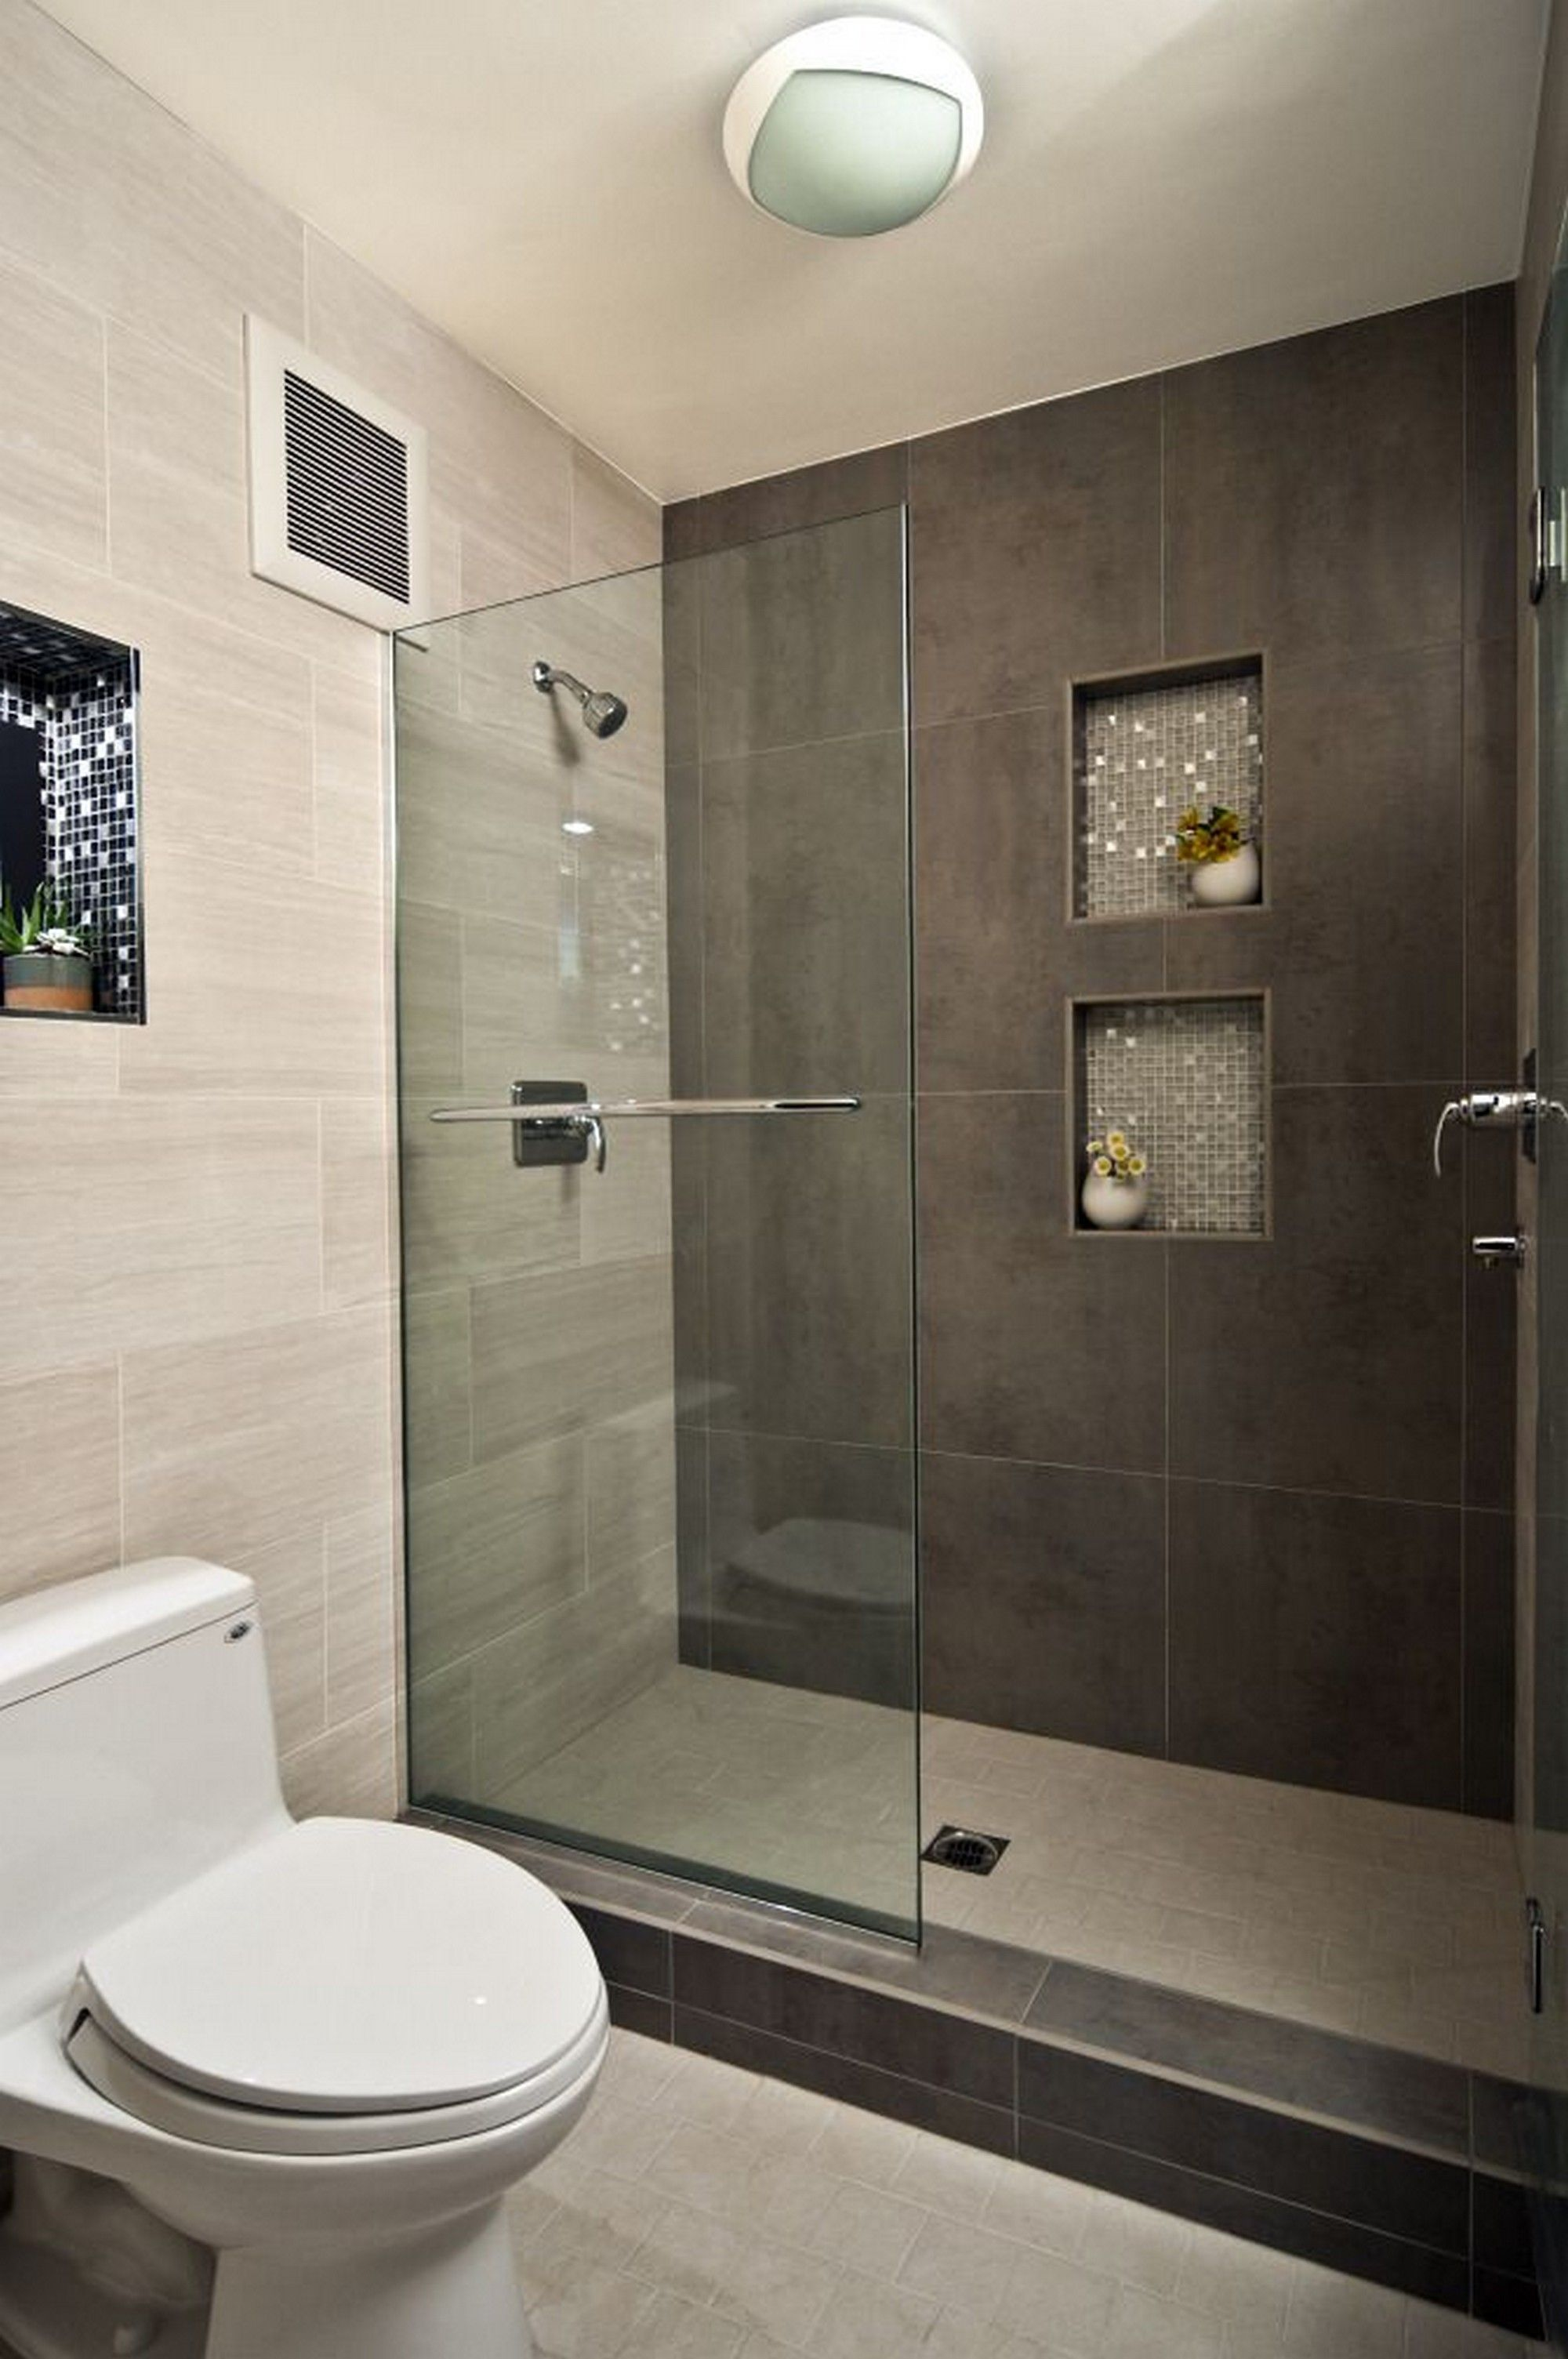 Bathroom design ideas: choose walls, ceiling, layout - 70 photos 37